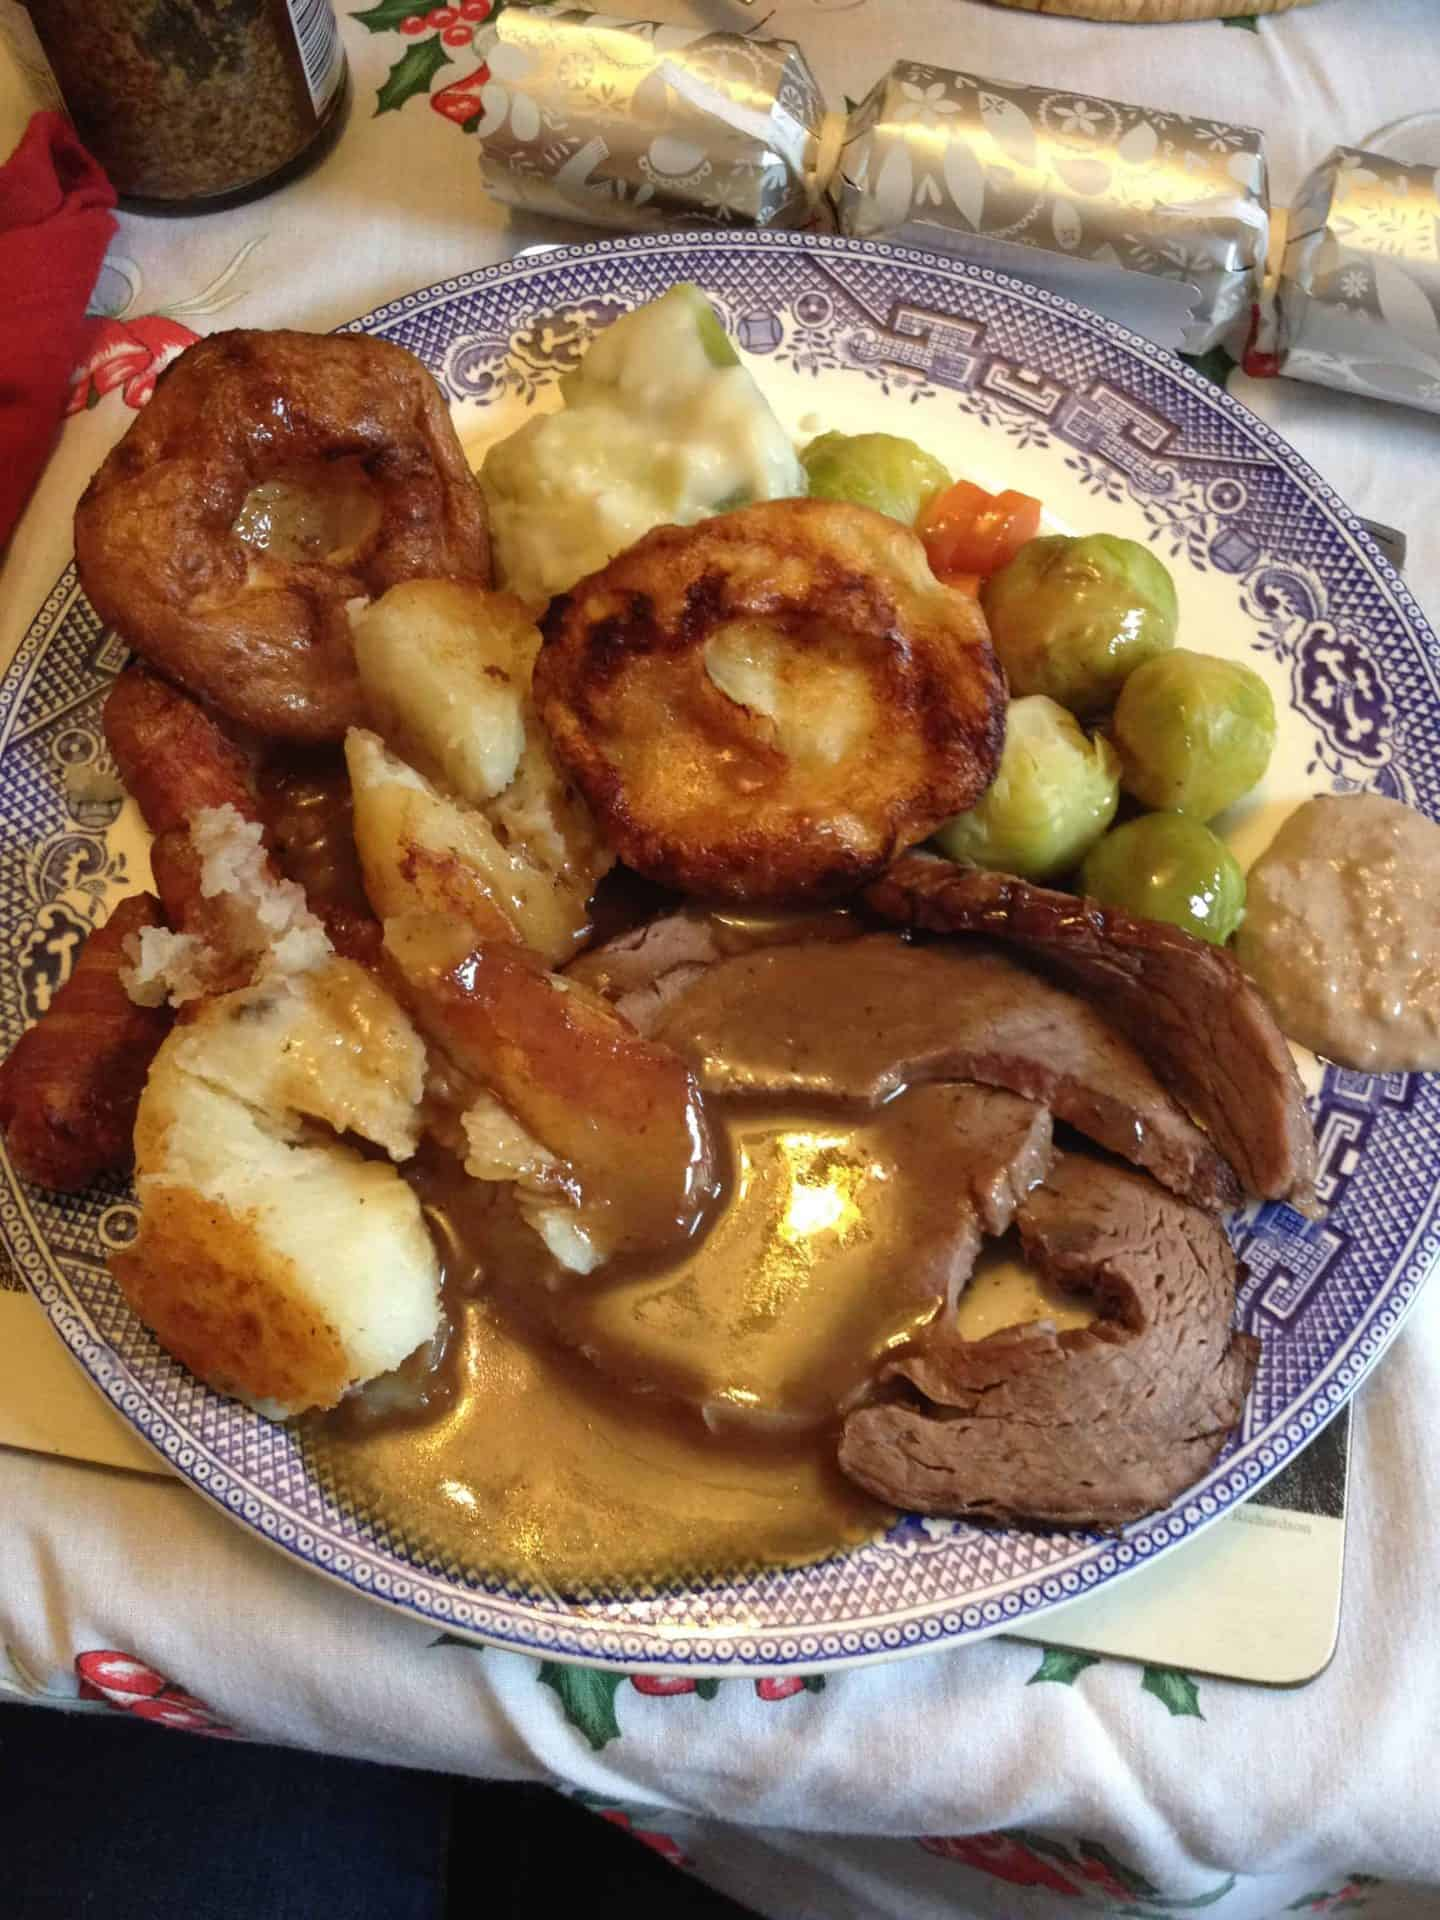 My gluten free Christmas dinner looked like….